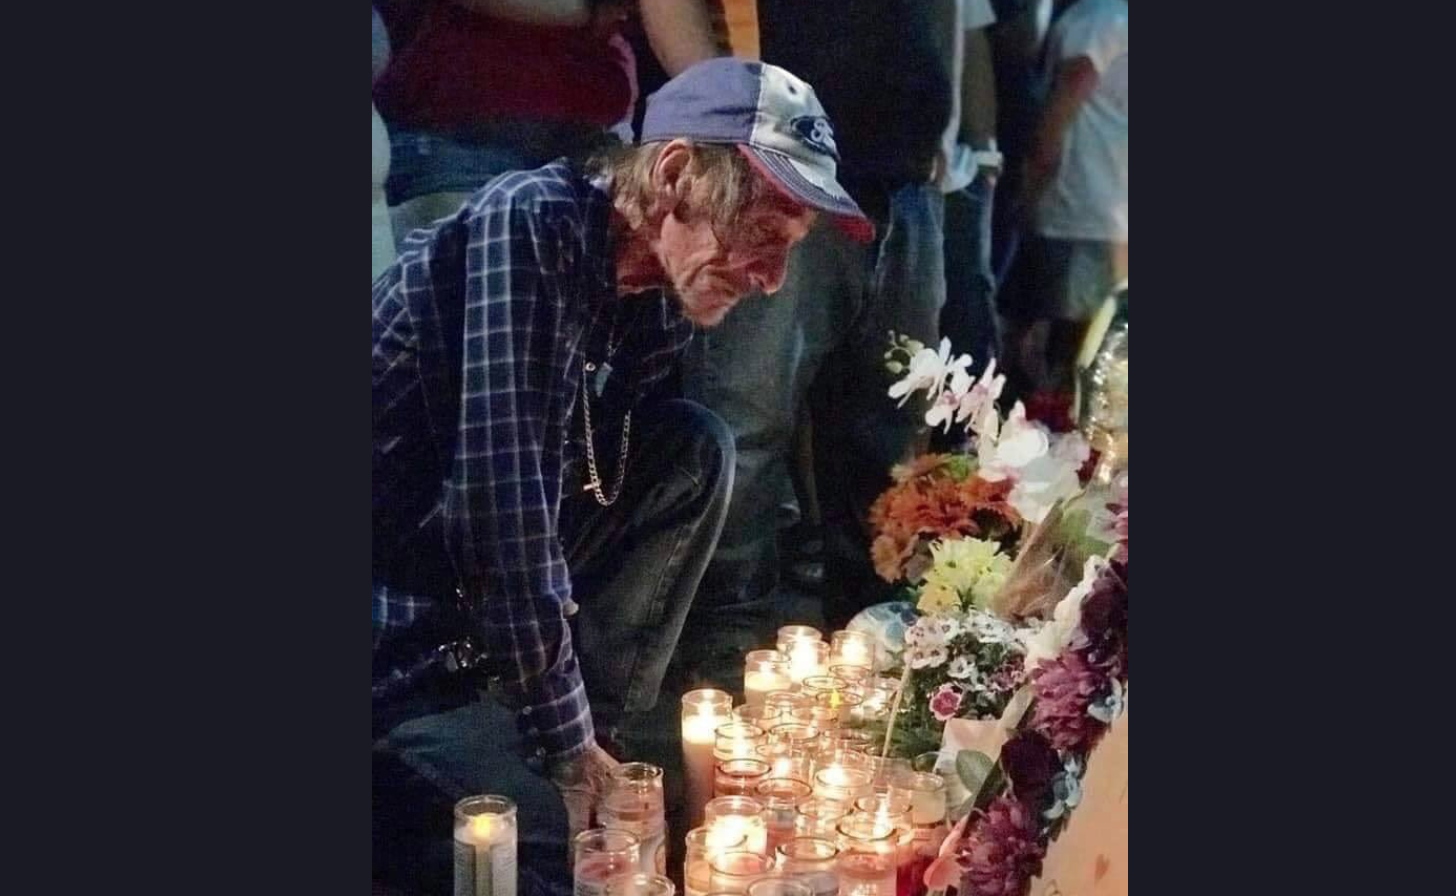 Man who lost wife in El Paso shooting invites community to funeral, as he has no family left